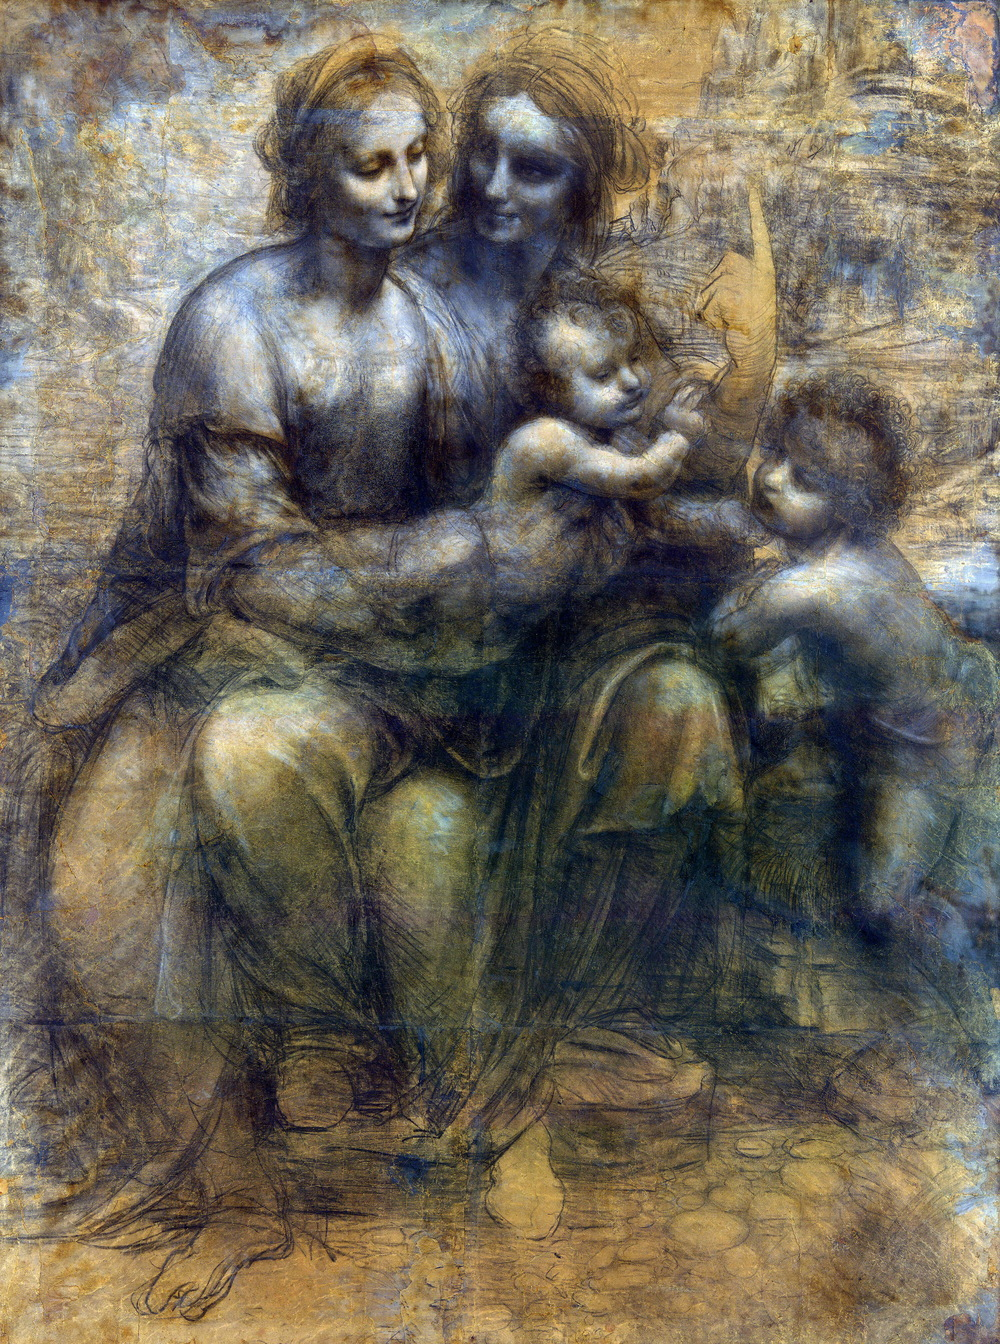 the-virgin-mary-and-christ-with-st-anne-and-the-young-st-john-the-baptist-by-leonardo-da-vinci-c-1501.jpg